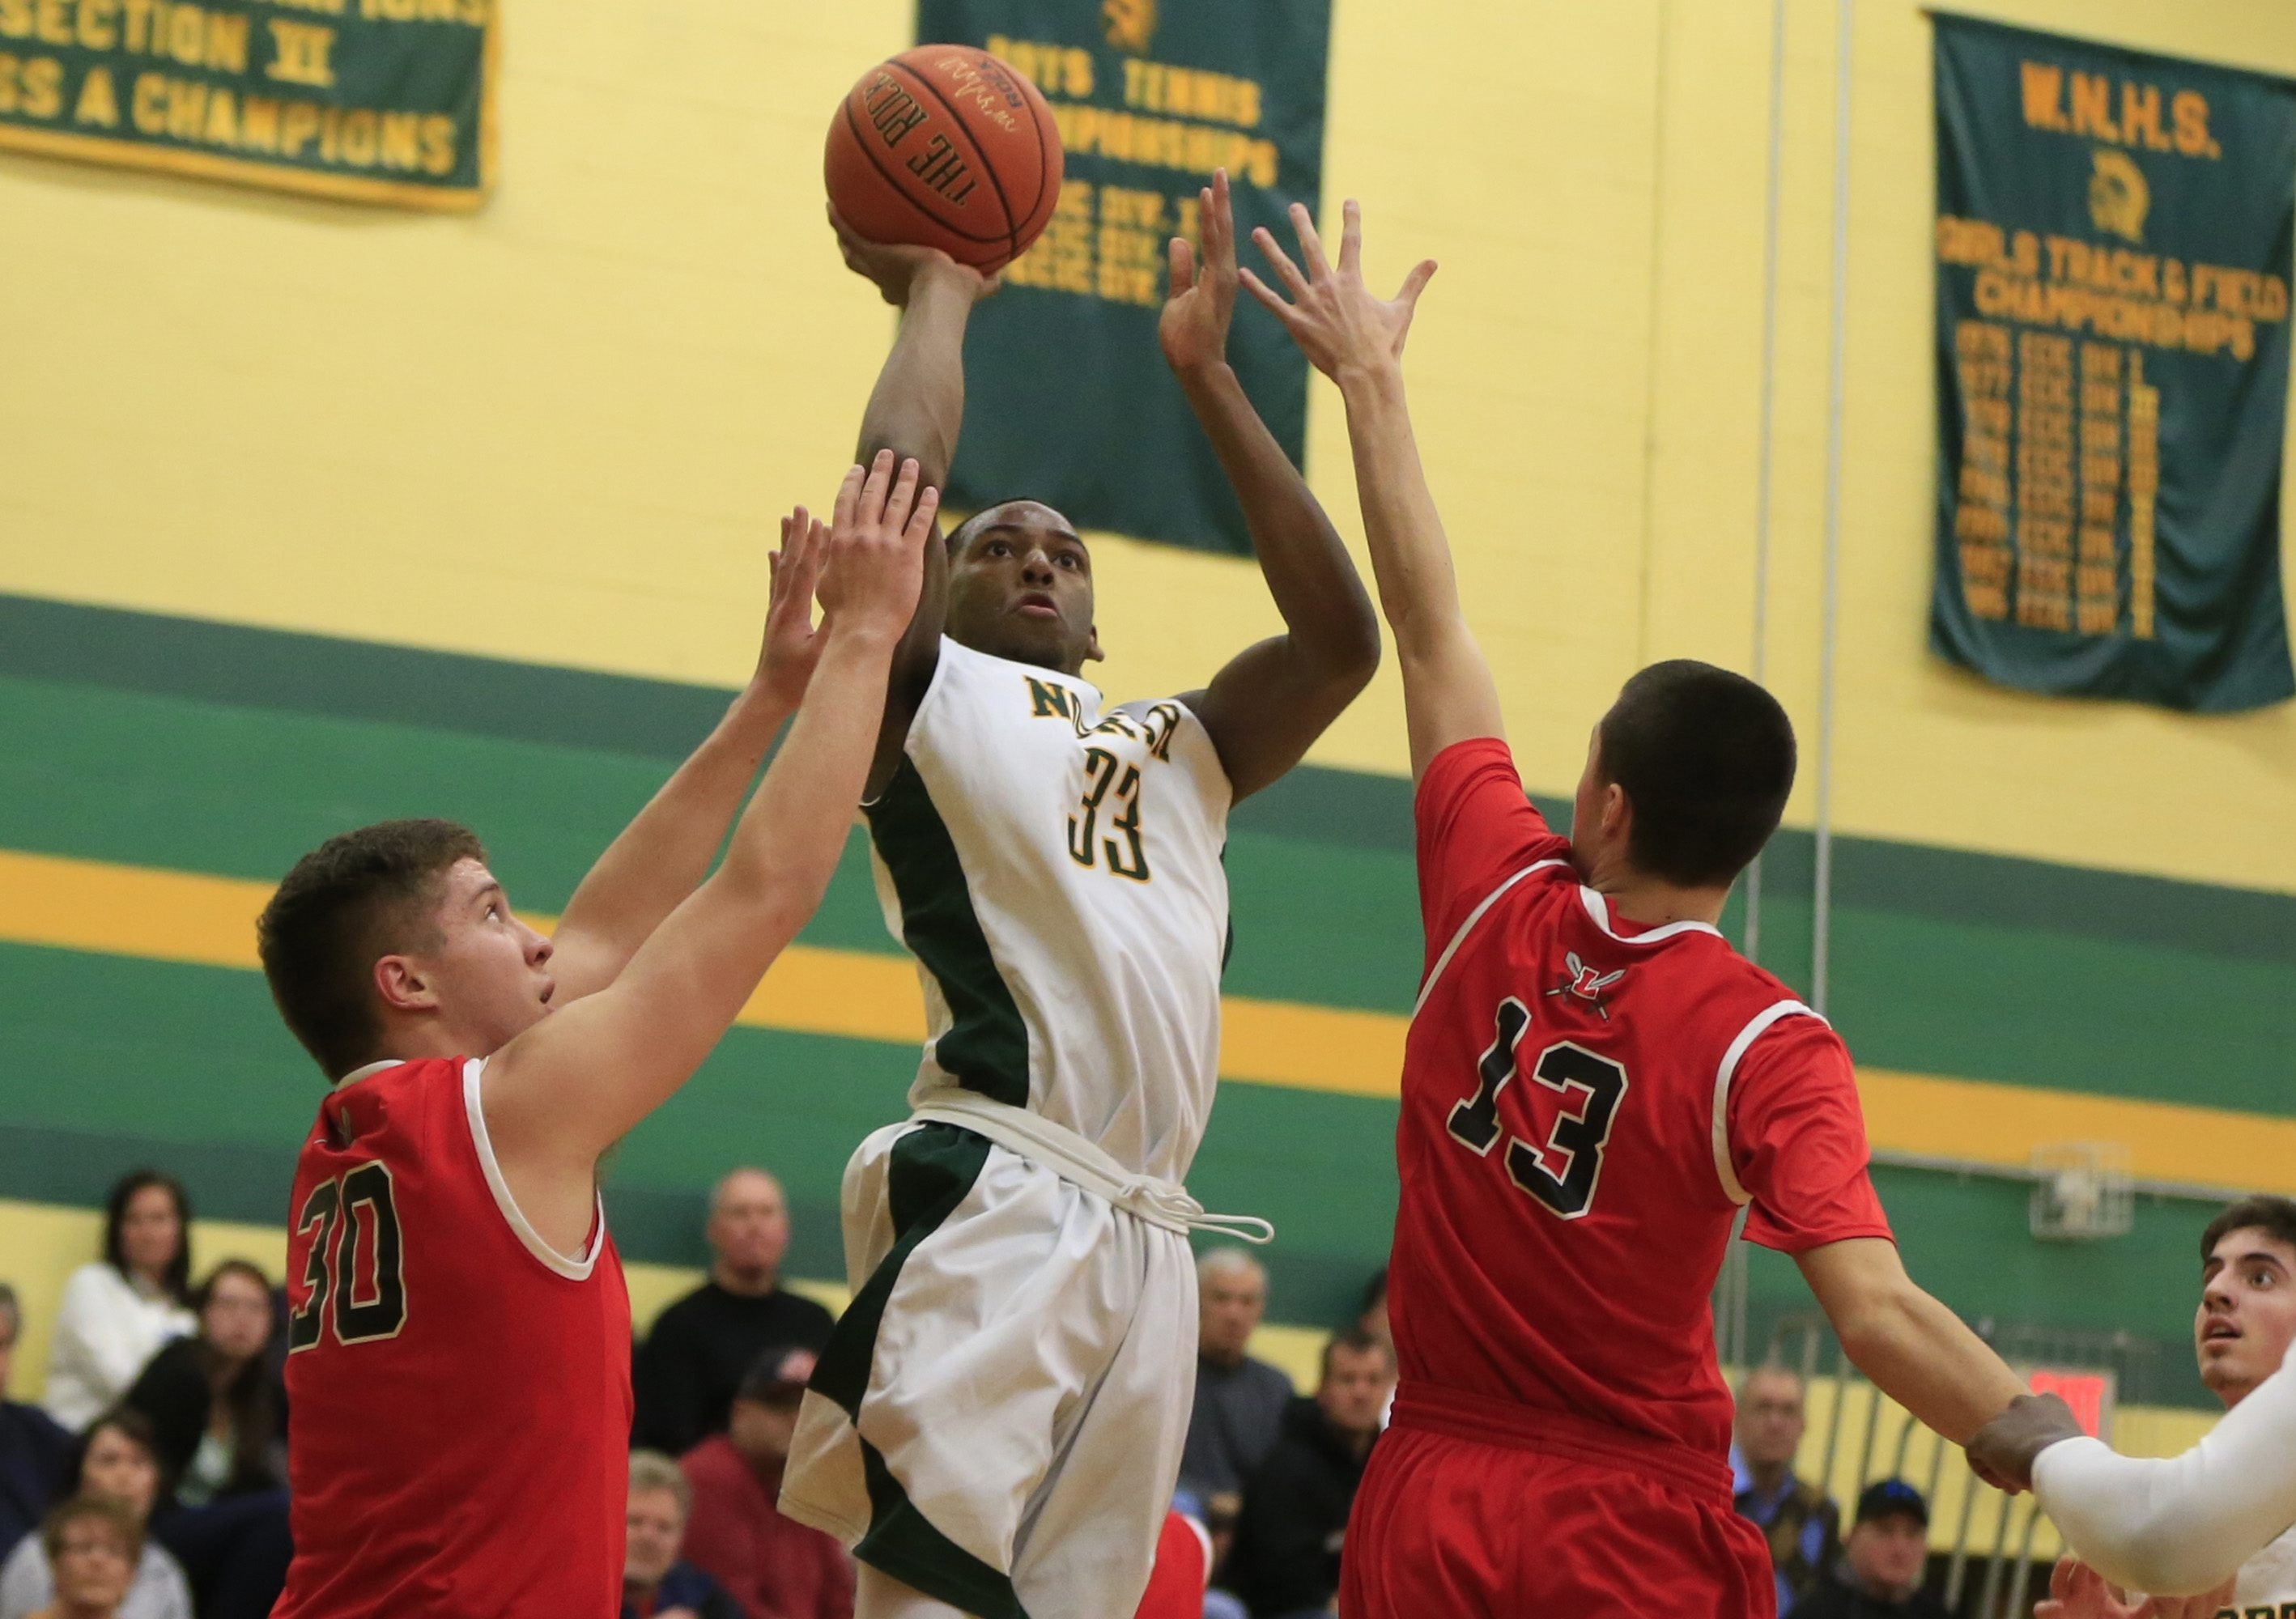 Williamsville North's Maceo Jack shoots against Lancaster during first-half action of their game won by the Spartans, 66-39.